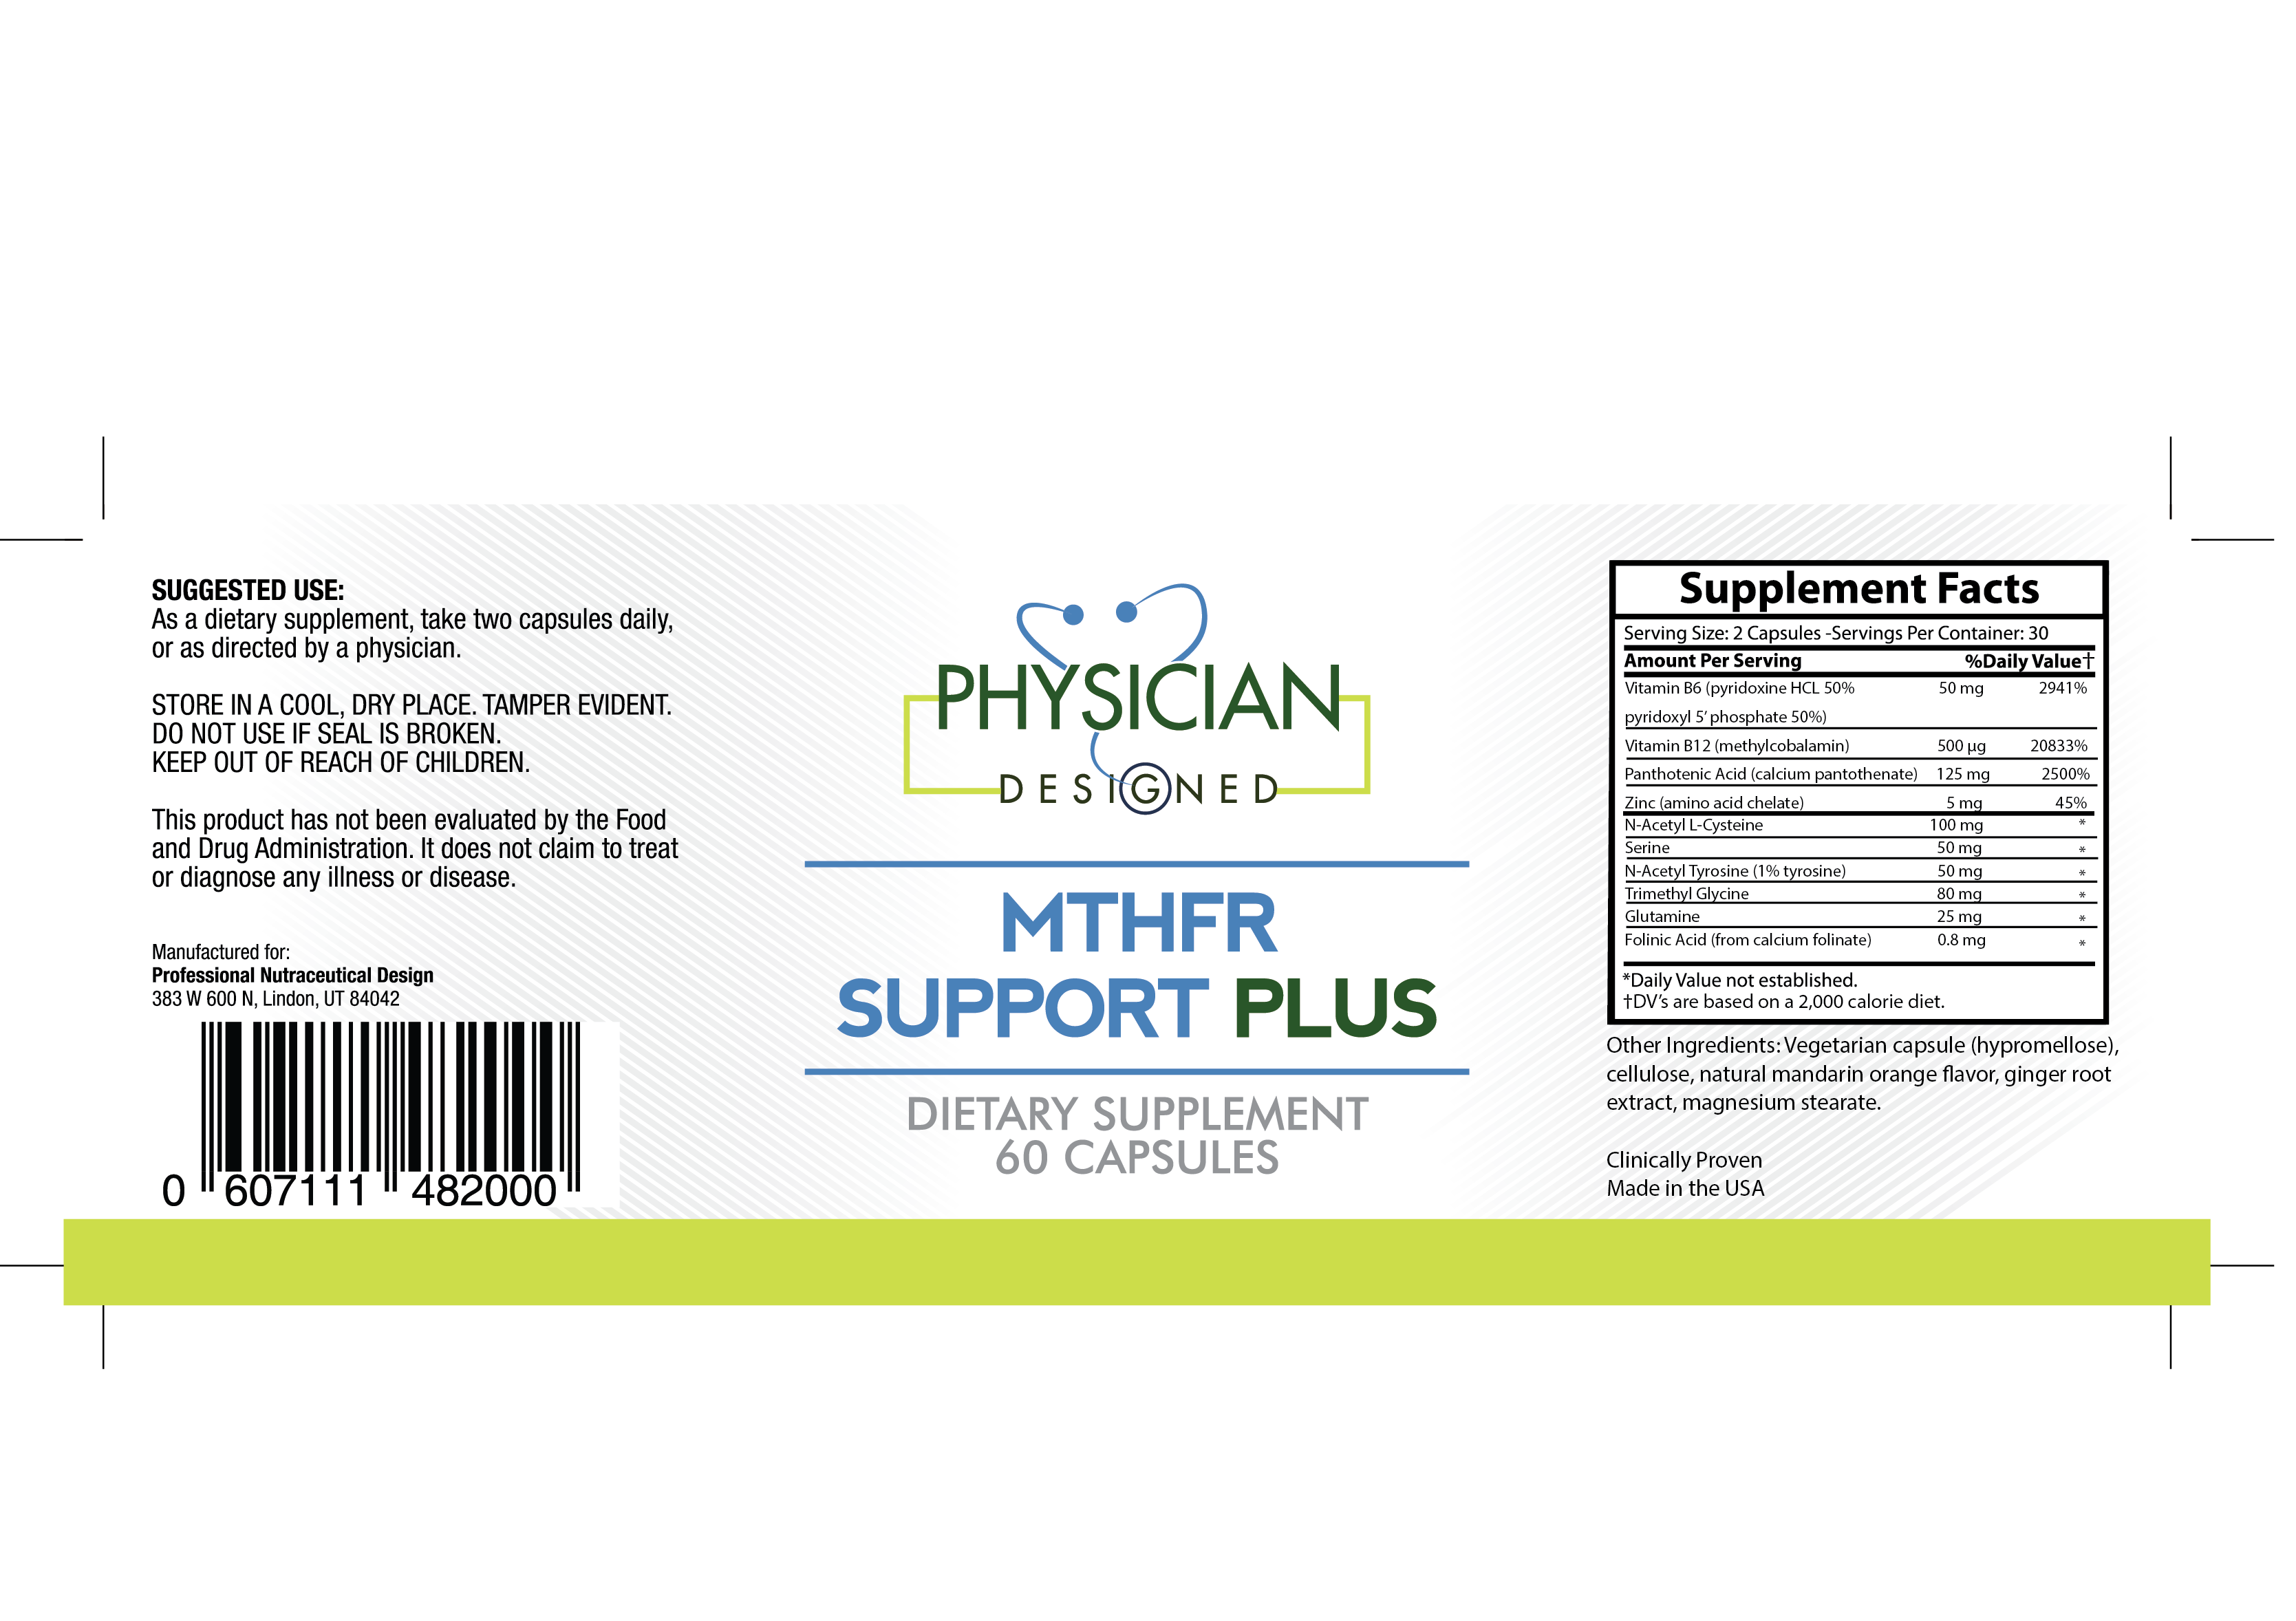 MTHFR Support Plus - Physician Designed